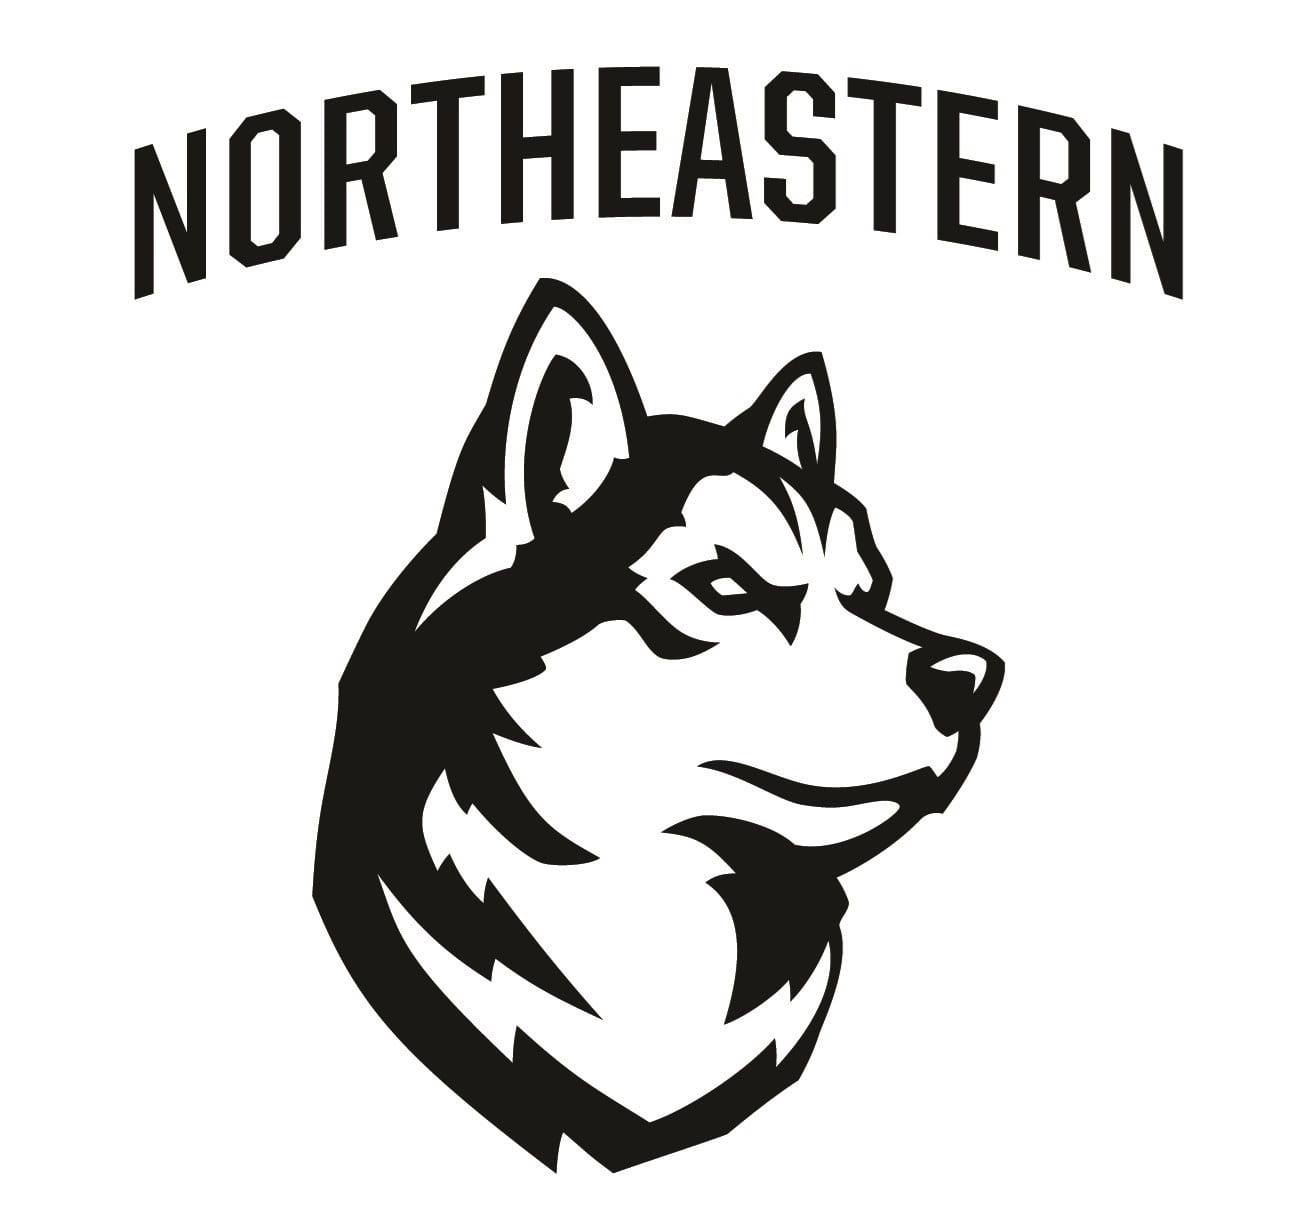 Northeastern Club Baseball